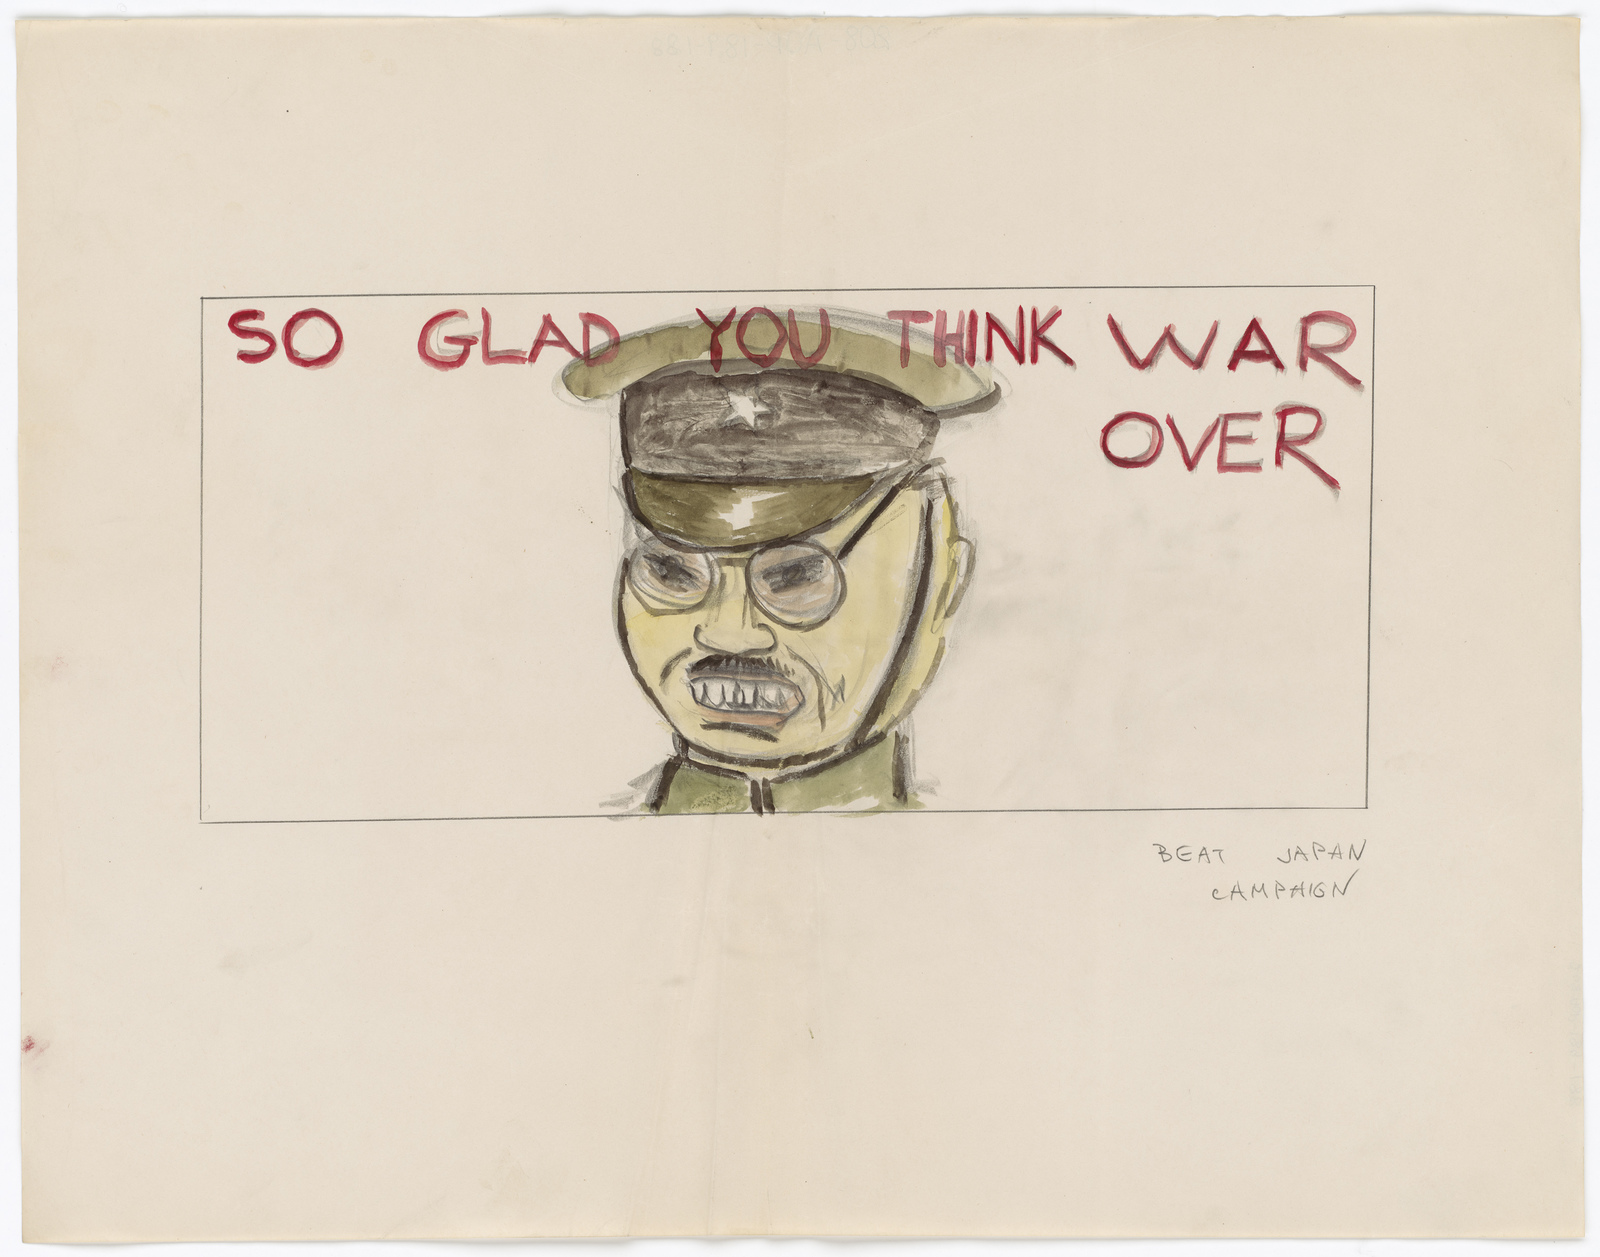 So Glad You Think War Over.  Beat Japan Campaign